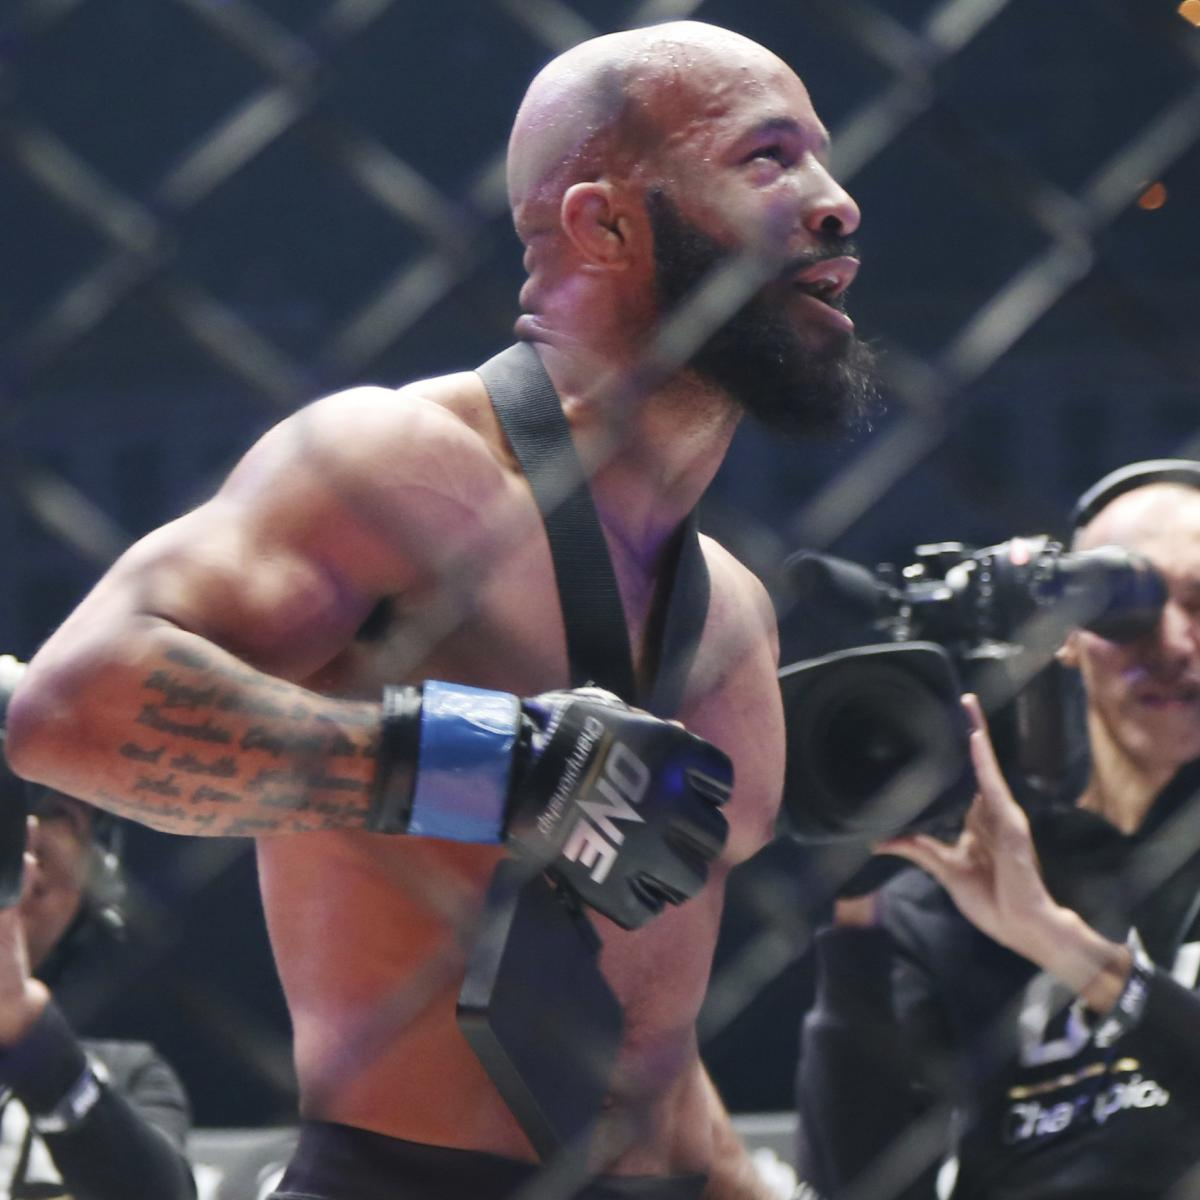 Demetrious Johnson Talks Adriano Moraes Fight, World Title, More in B/R AMA thumbnail